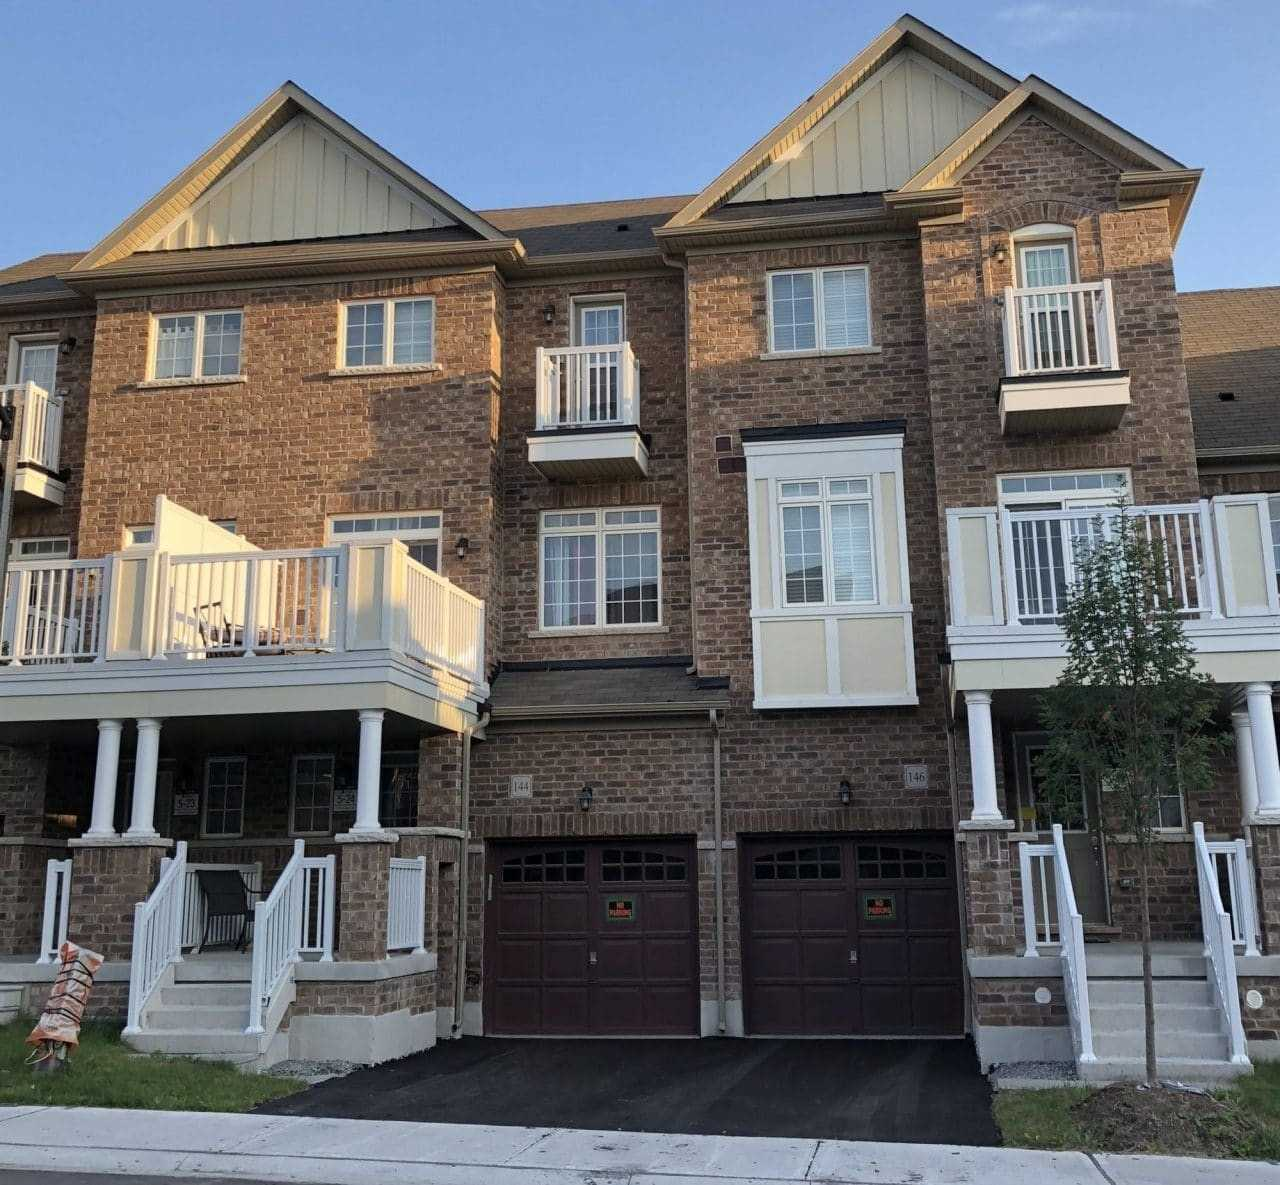 146 Roy Grove Way, Markham - 3-bedroom townhome for sale